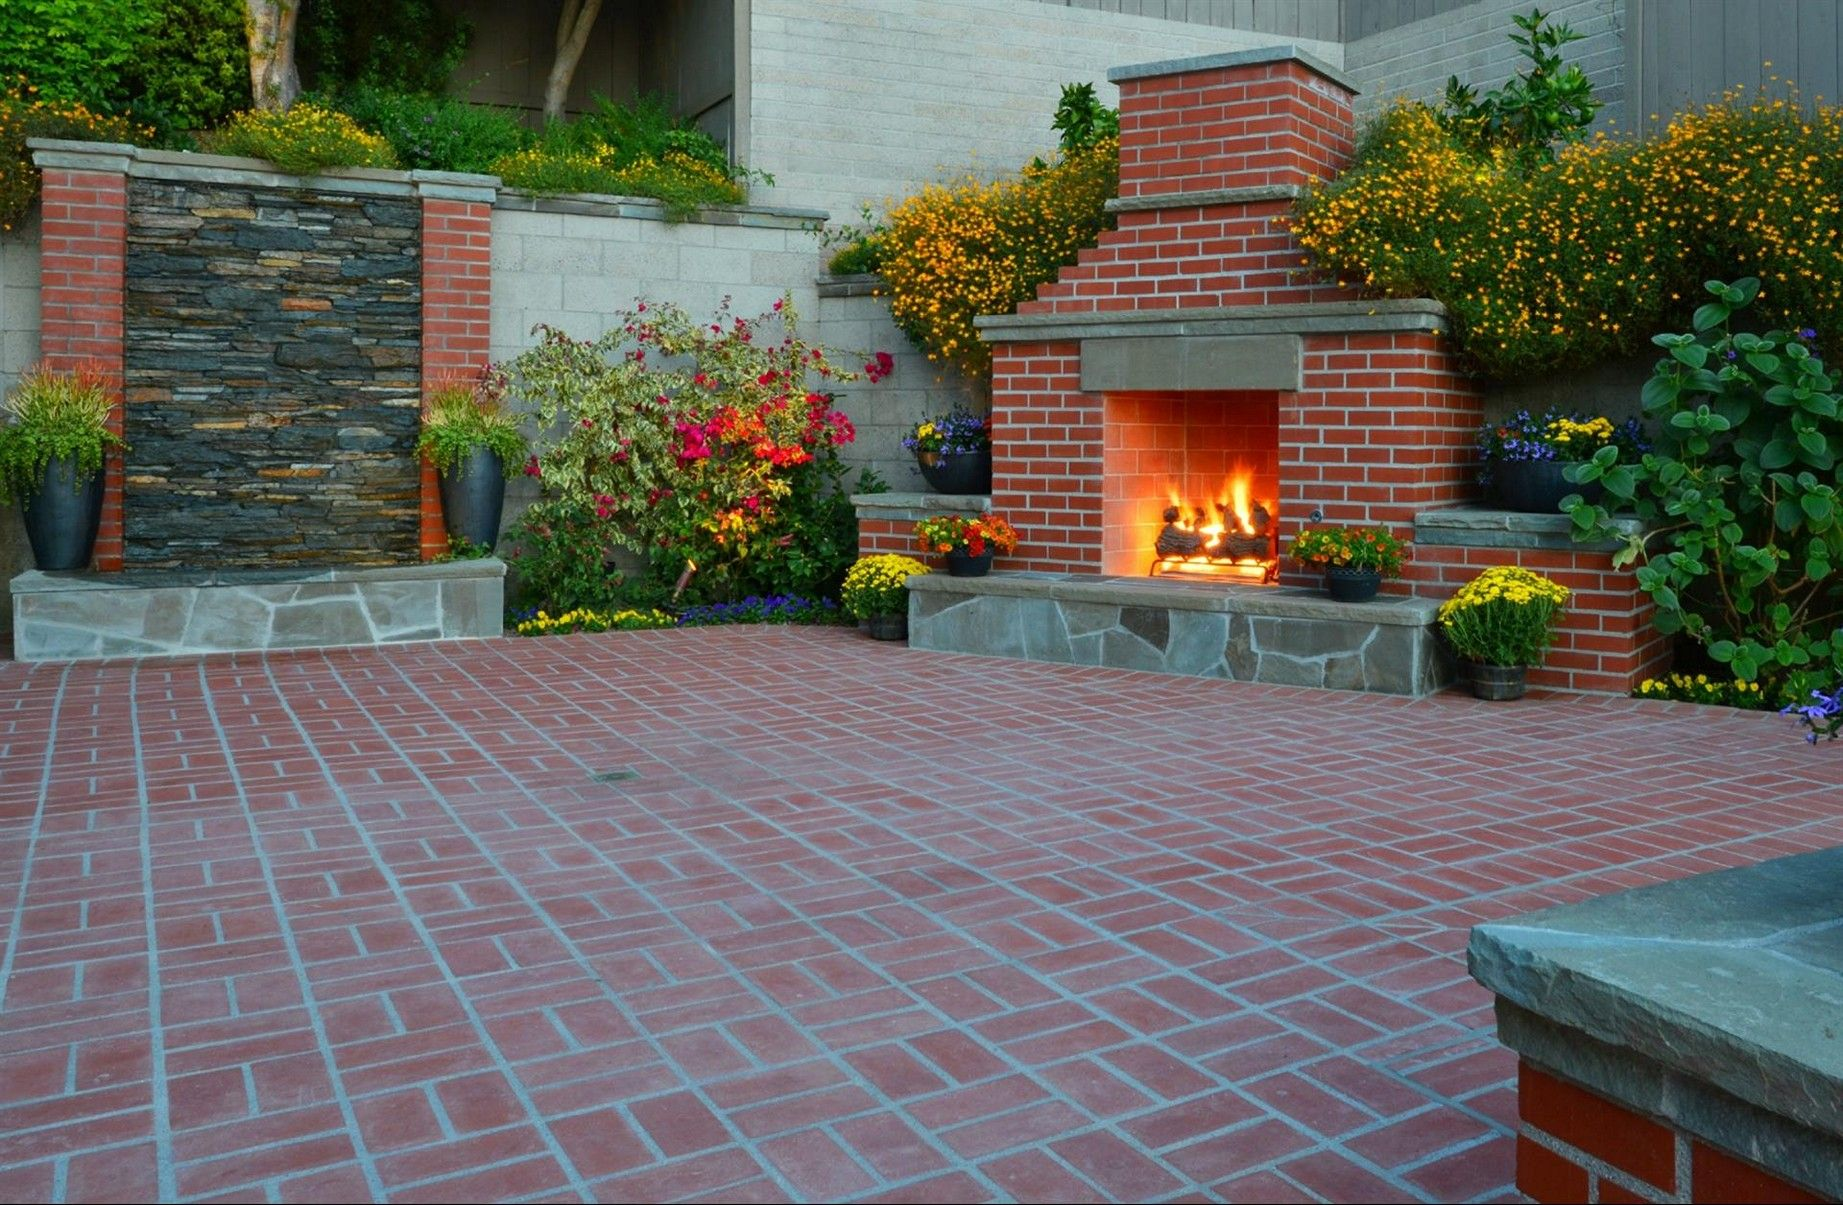 Red Brick Patio Designs | Tyres2c on Red Paver Patio Ideas id=41630